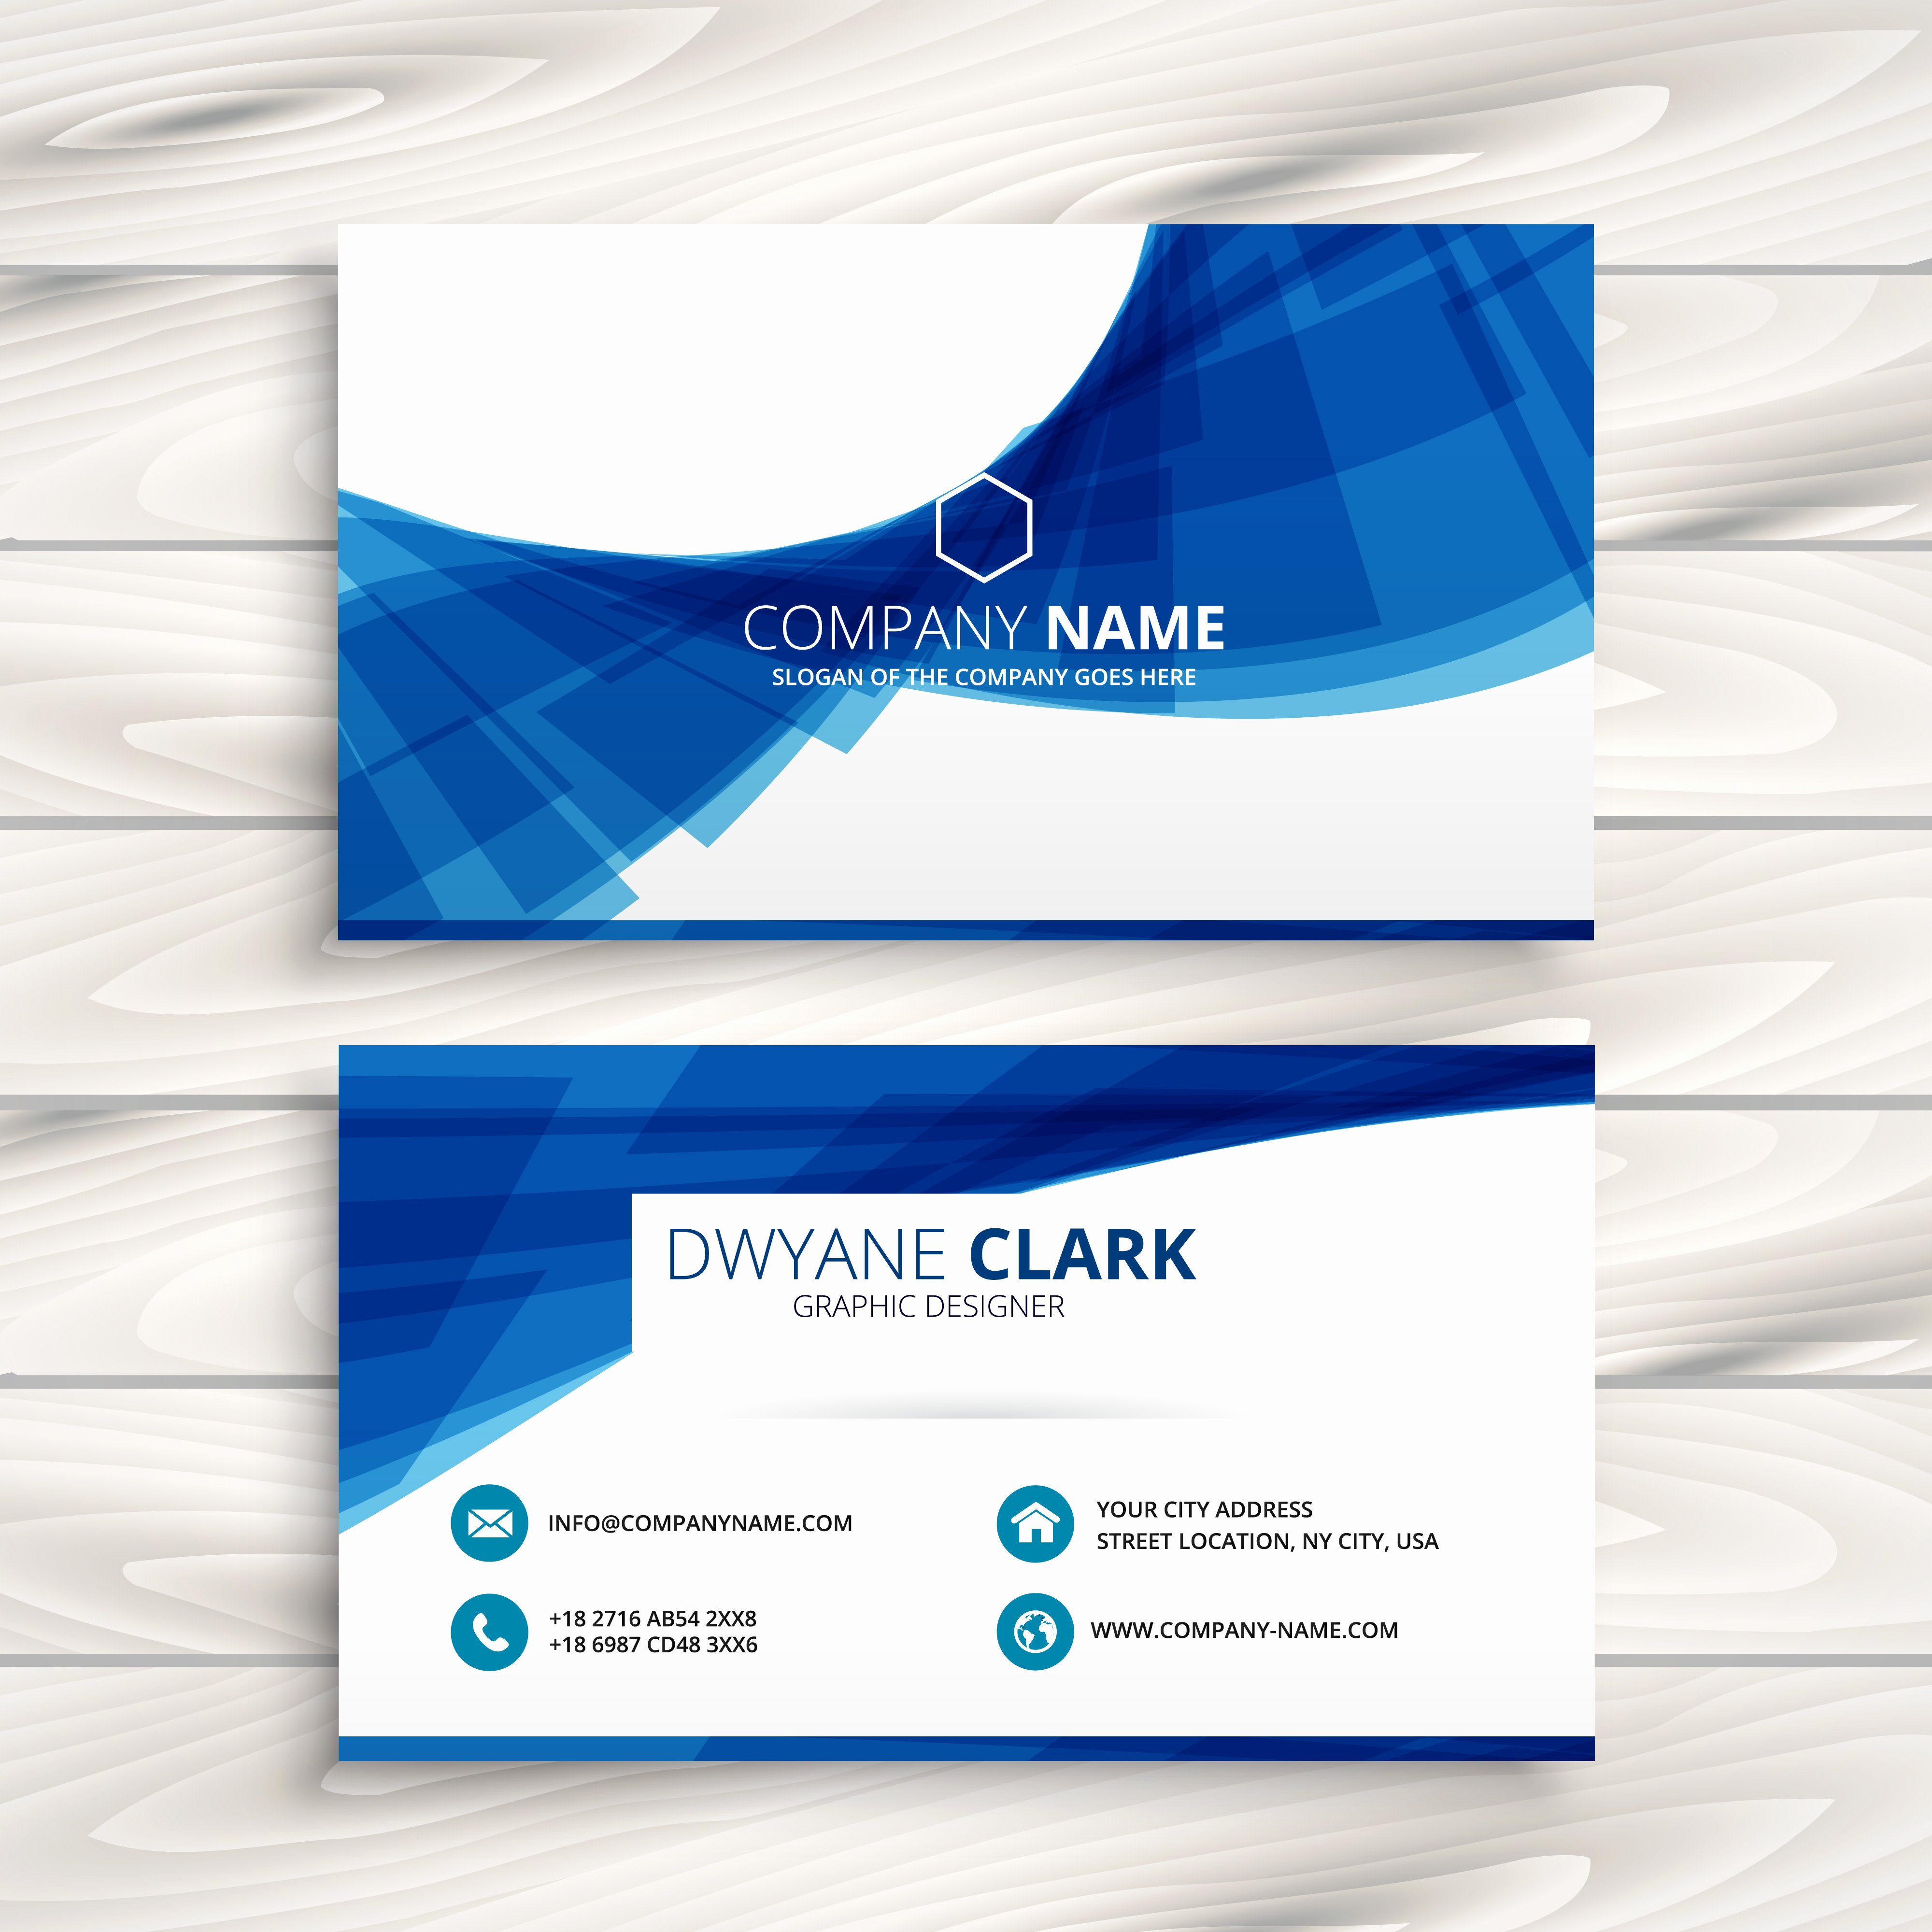 Business Card Template Vector Lovely Blue Wave Business Card Template Vector Design